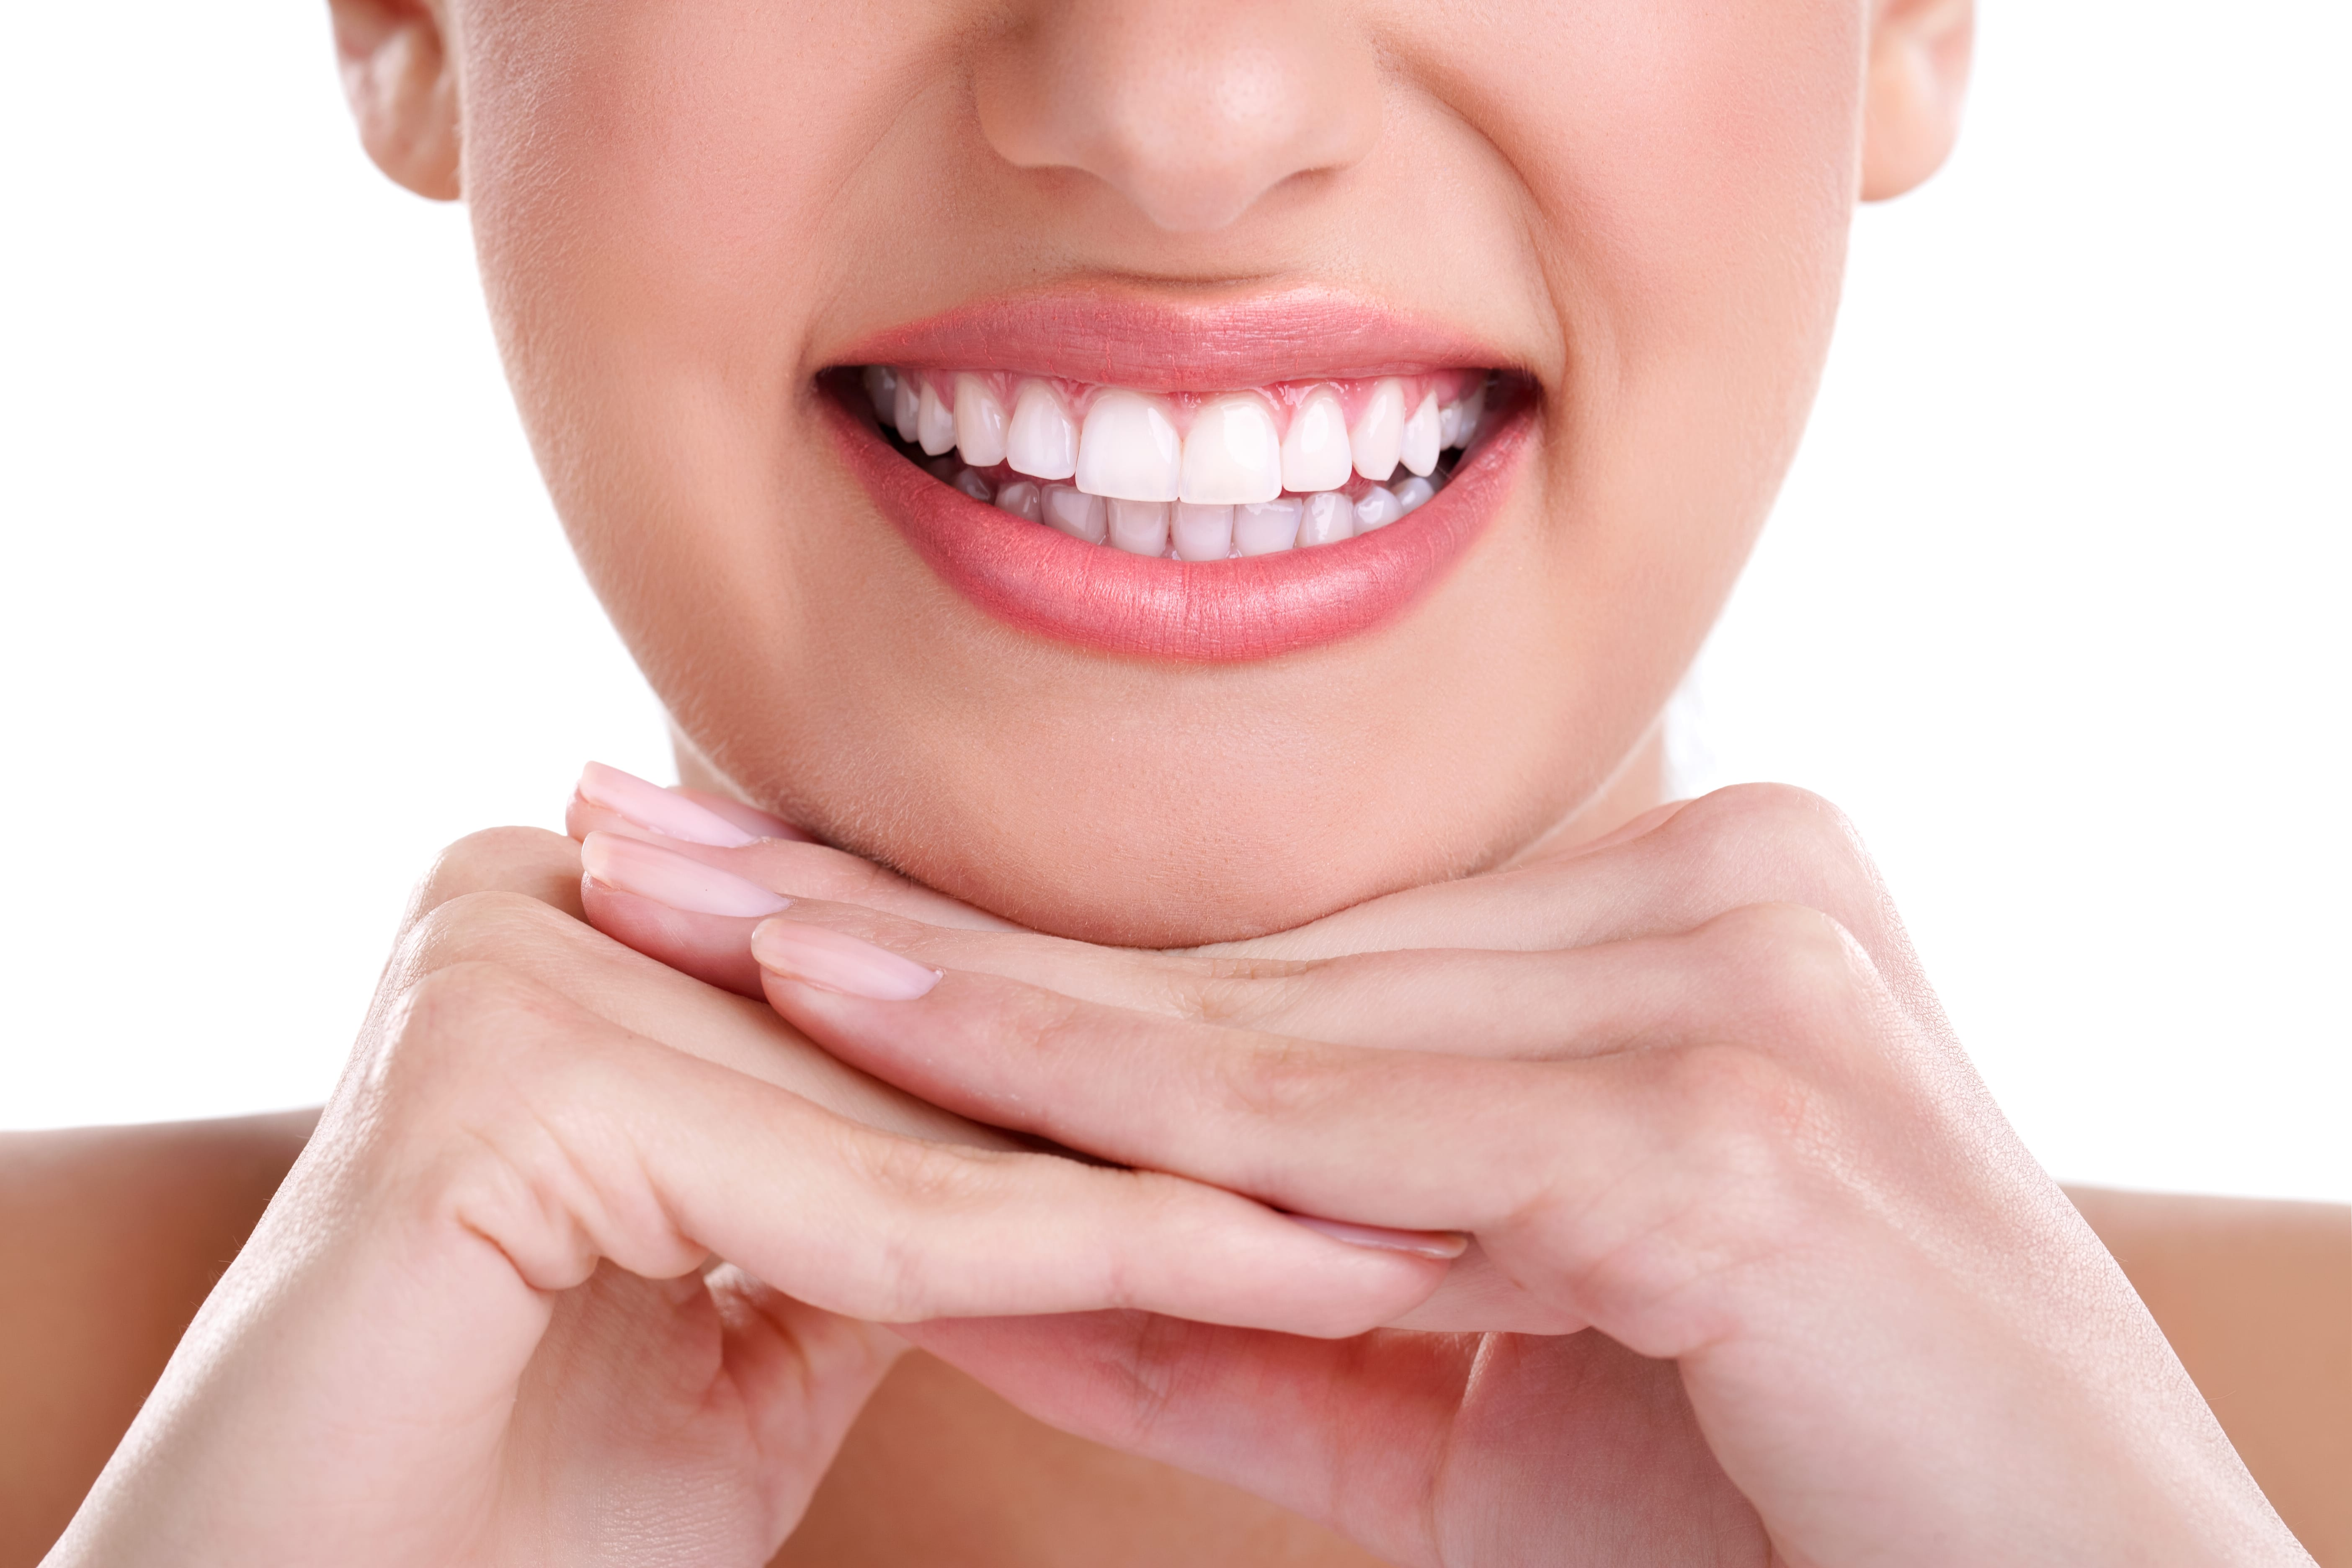 Smiling female with white teeth